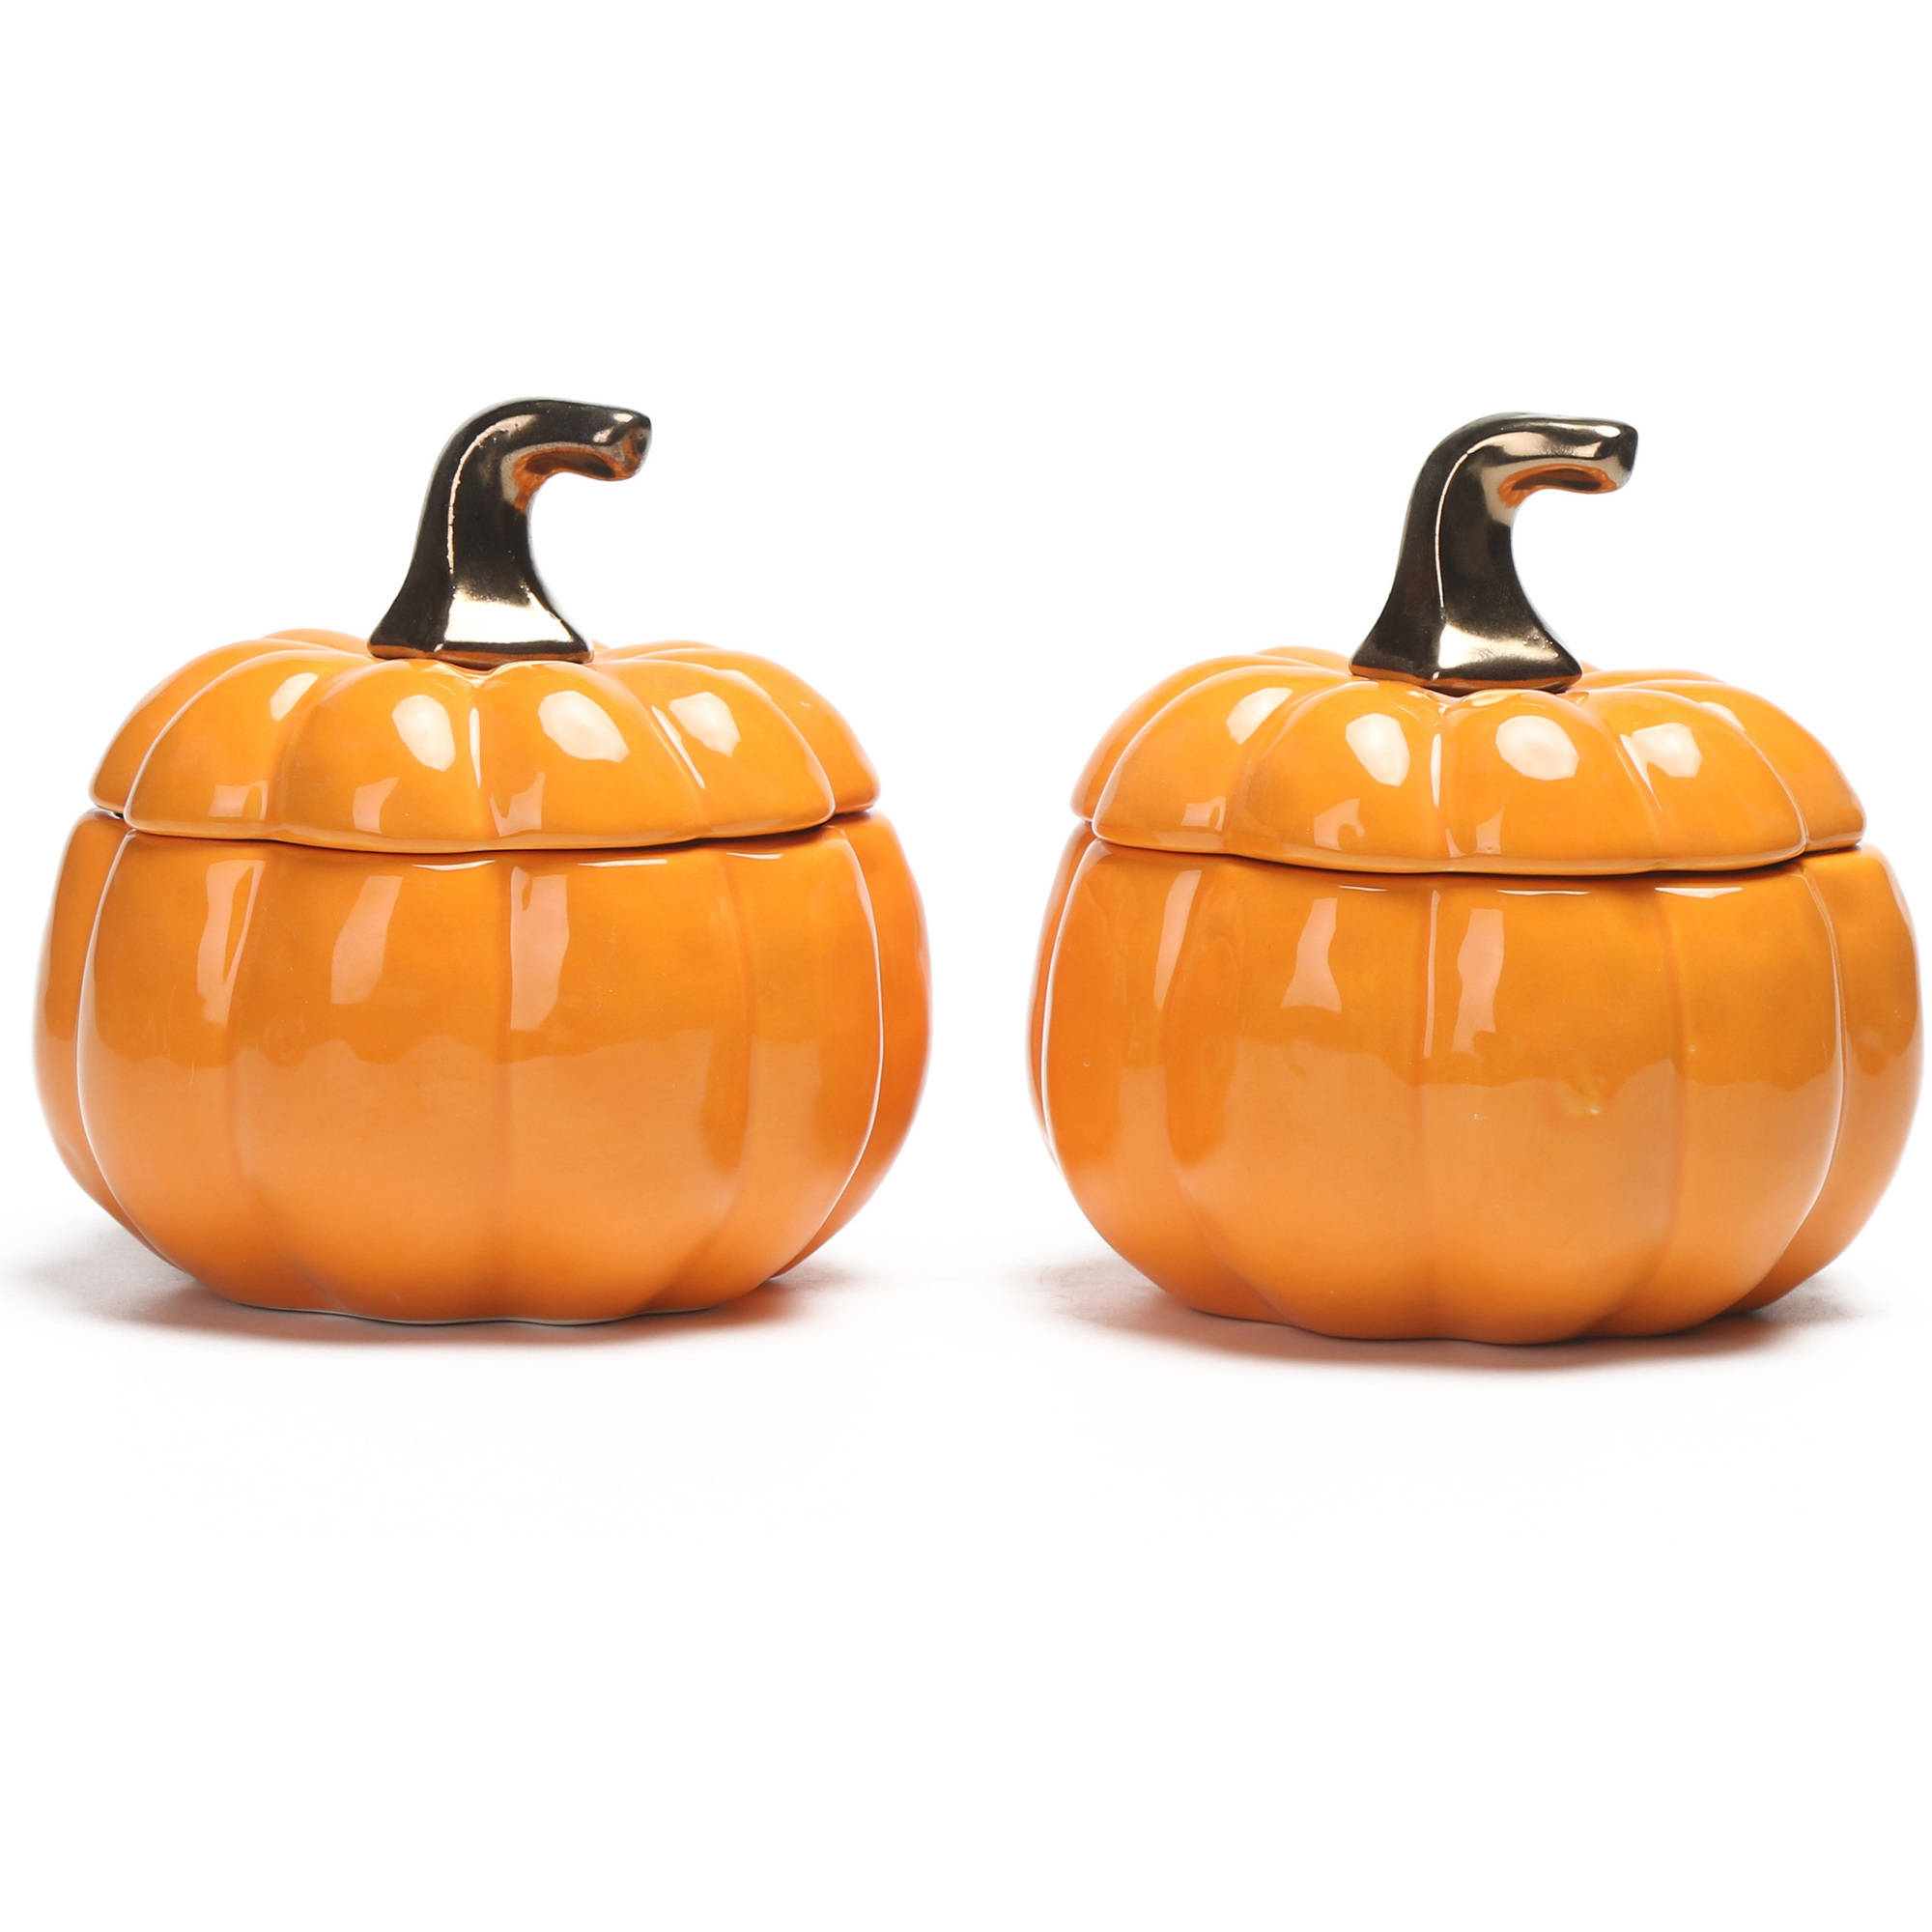 Better Homes and Gardens Set of 2 Orange Pumpkin Lidded Soup Bowls